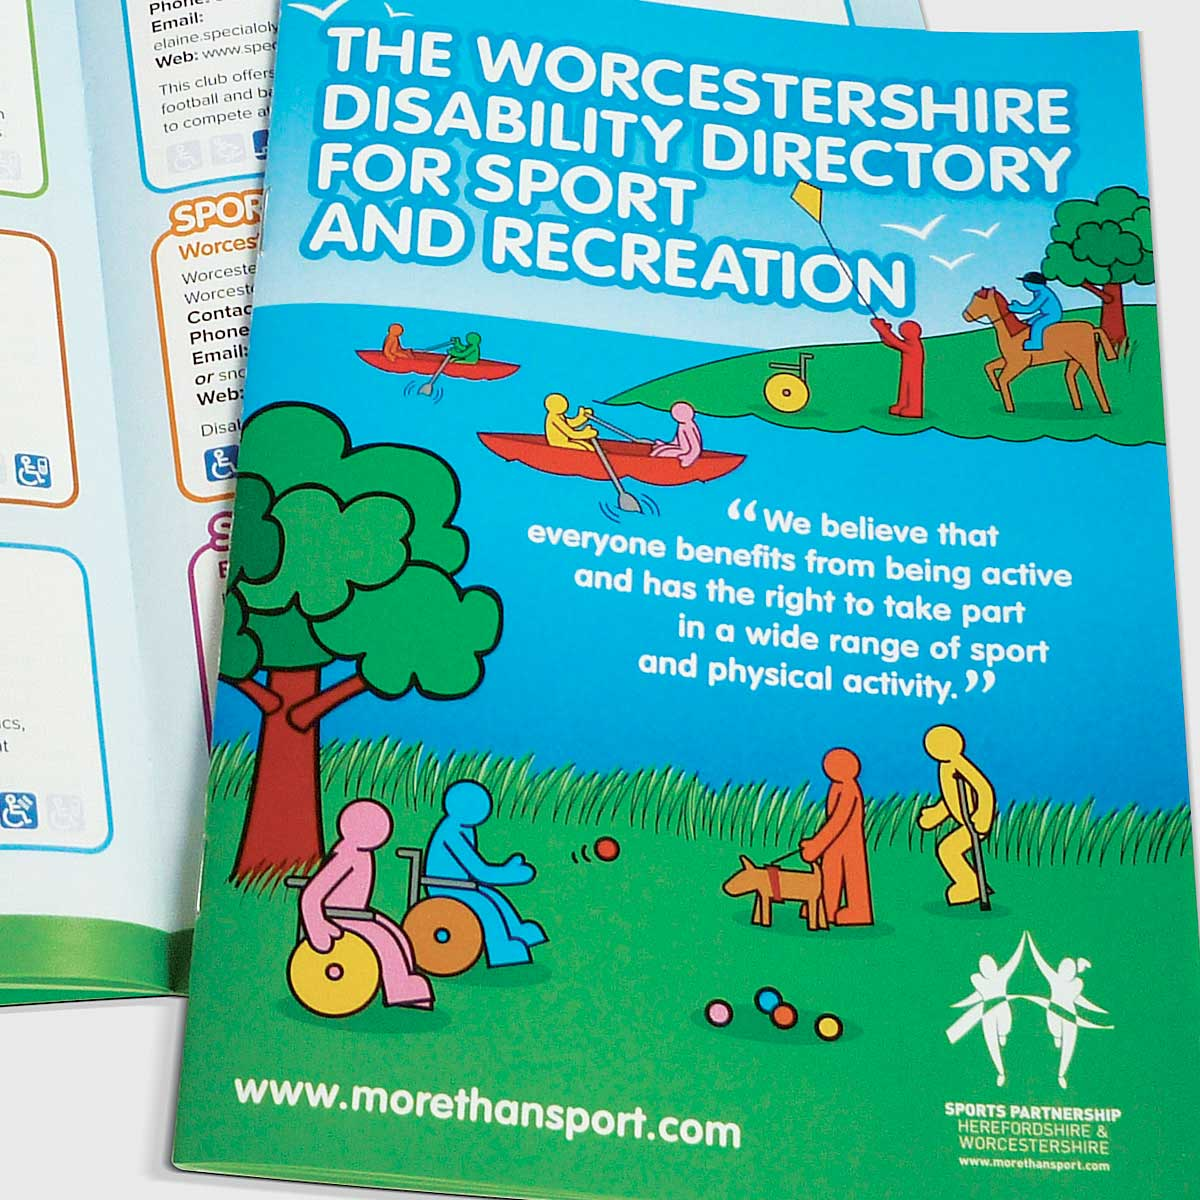 Disability Directory for Sports Partnership Herefordshire and Worcestershire